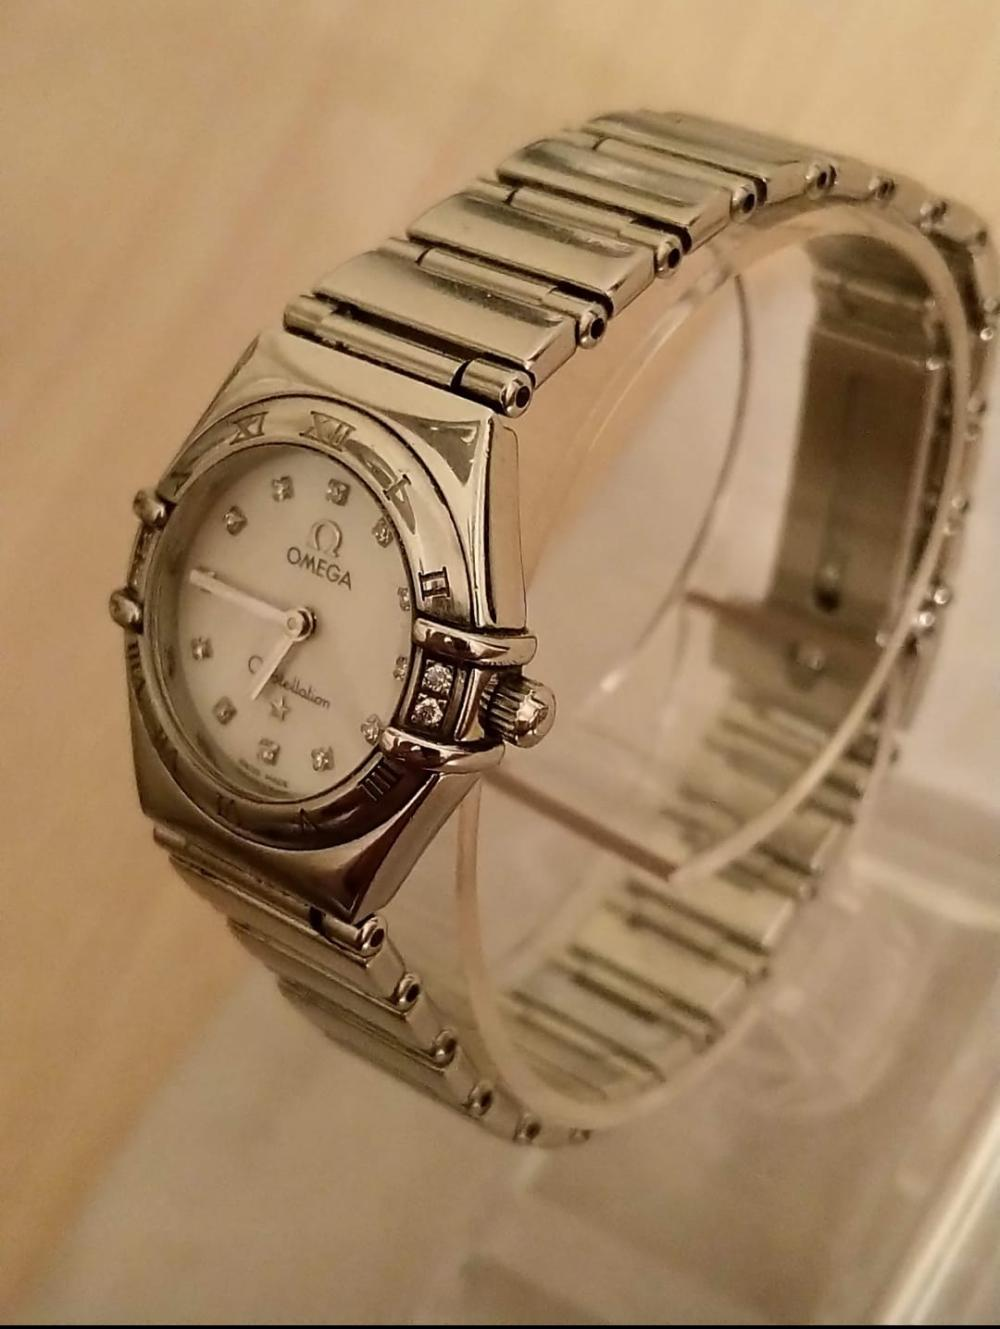 A 1998 Ladies Omega Constellation 'My Choice' Wristwatch, 1566.76, with Mother of Pearl & Diamonds, A/F